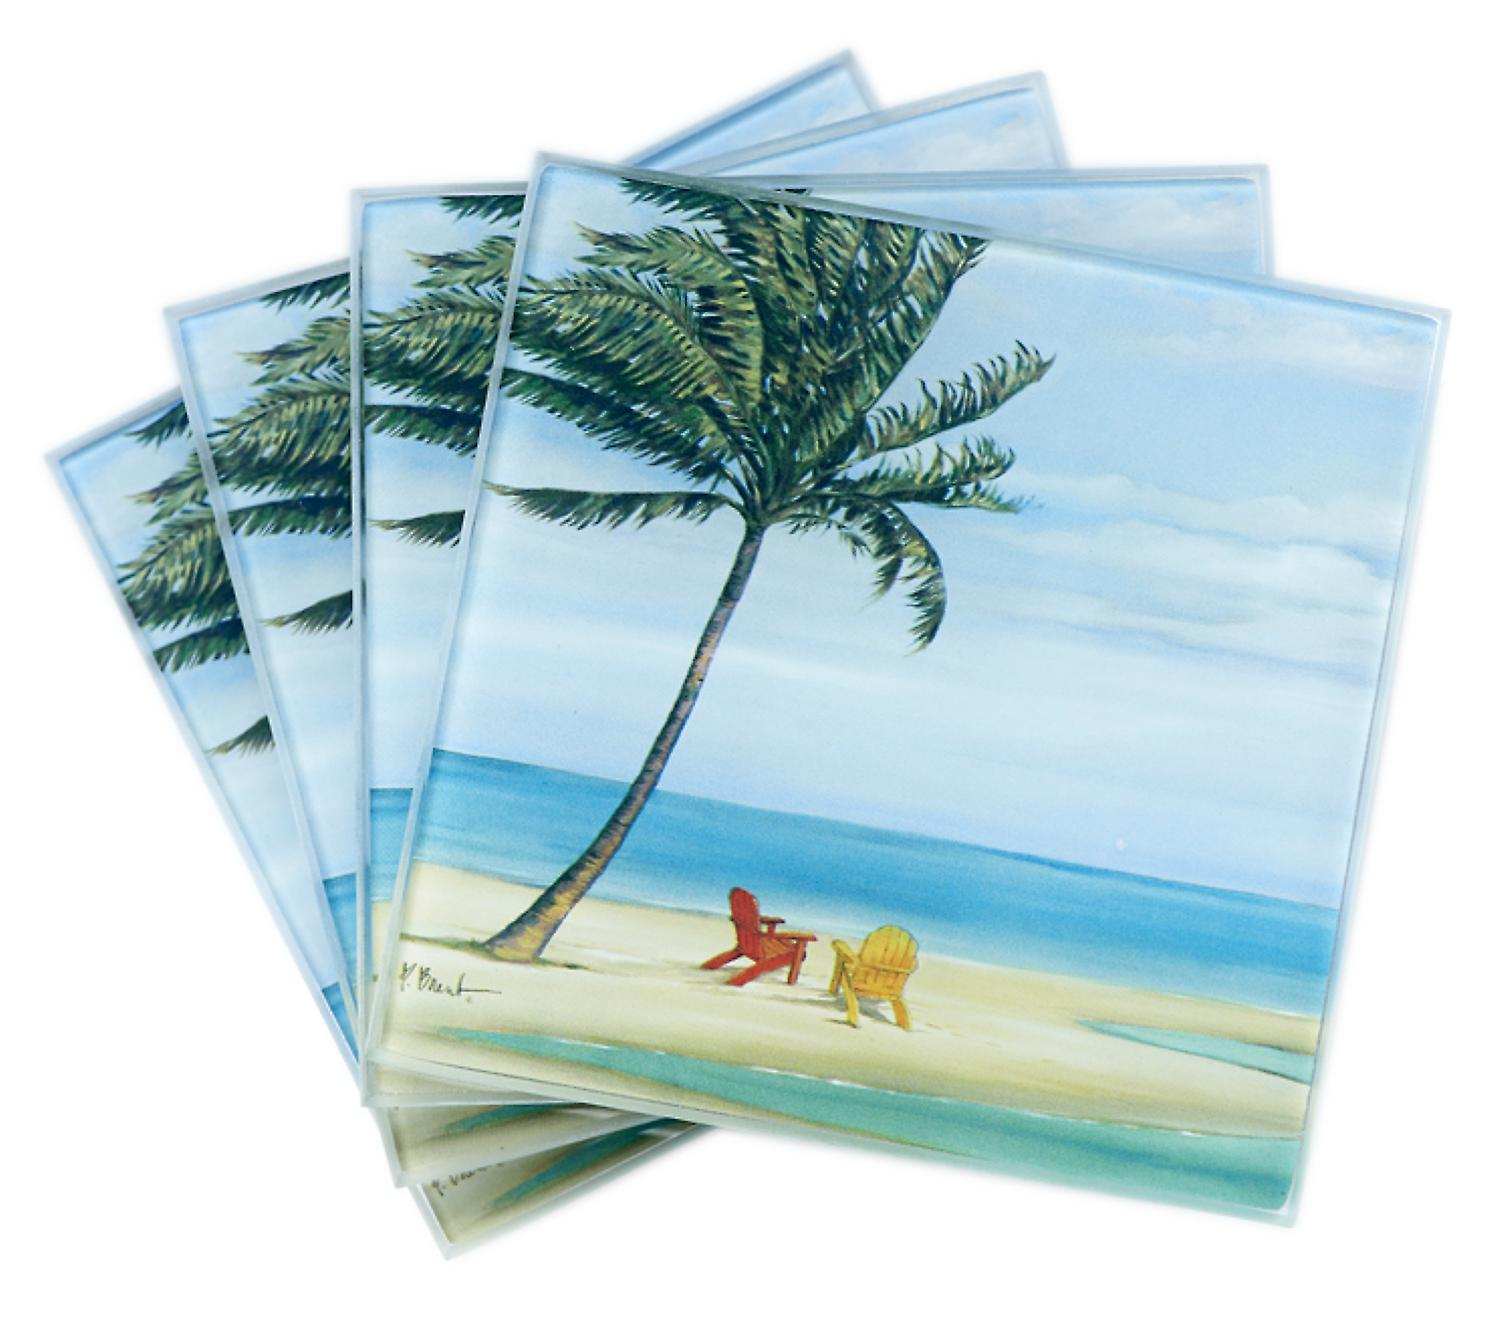 Inlet Palm Swaying in Wind Beach Scene Glass Drink Coasters Set of 4